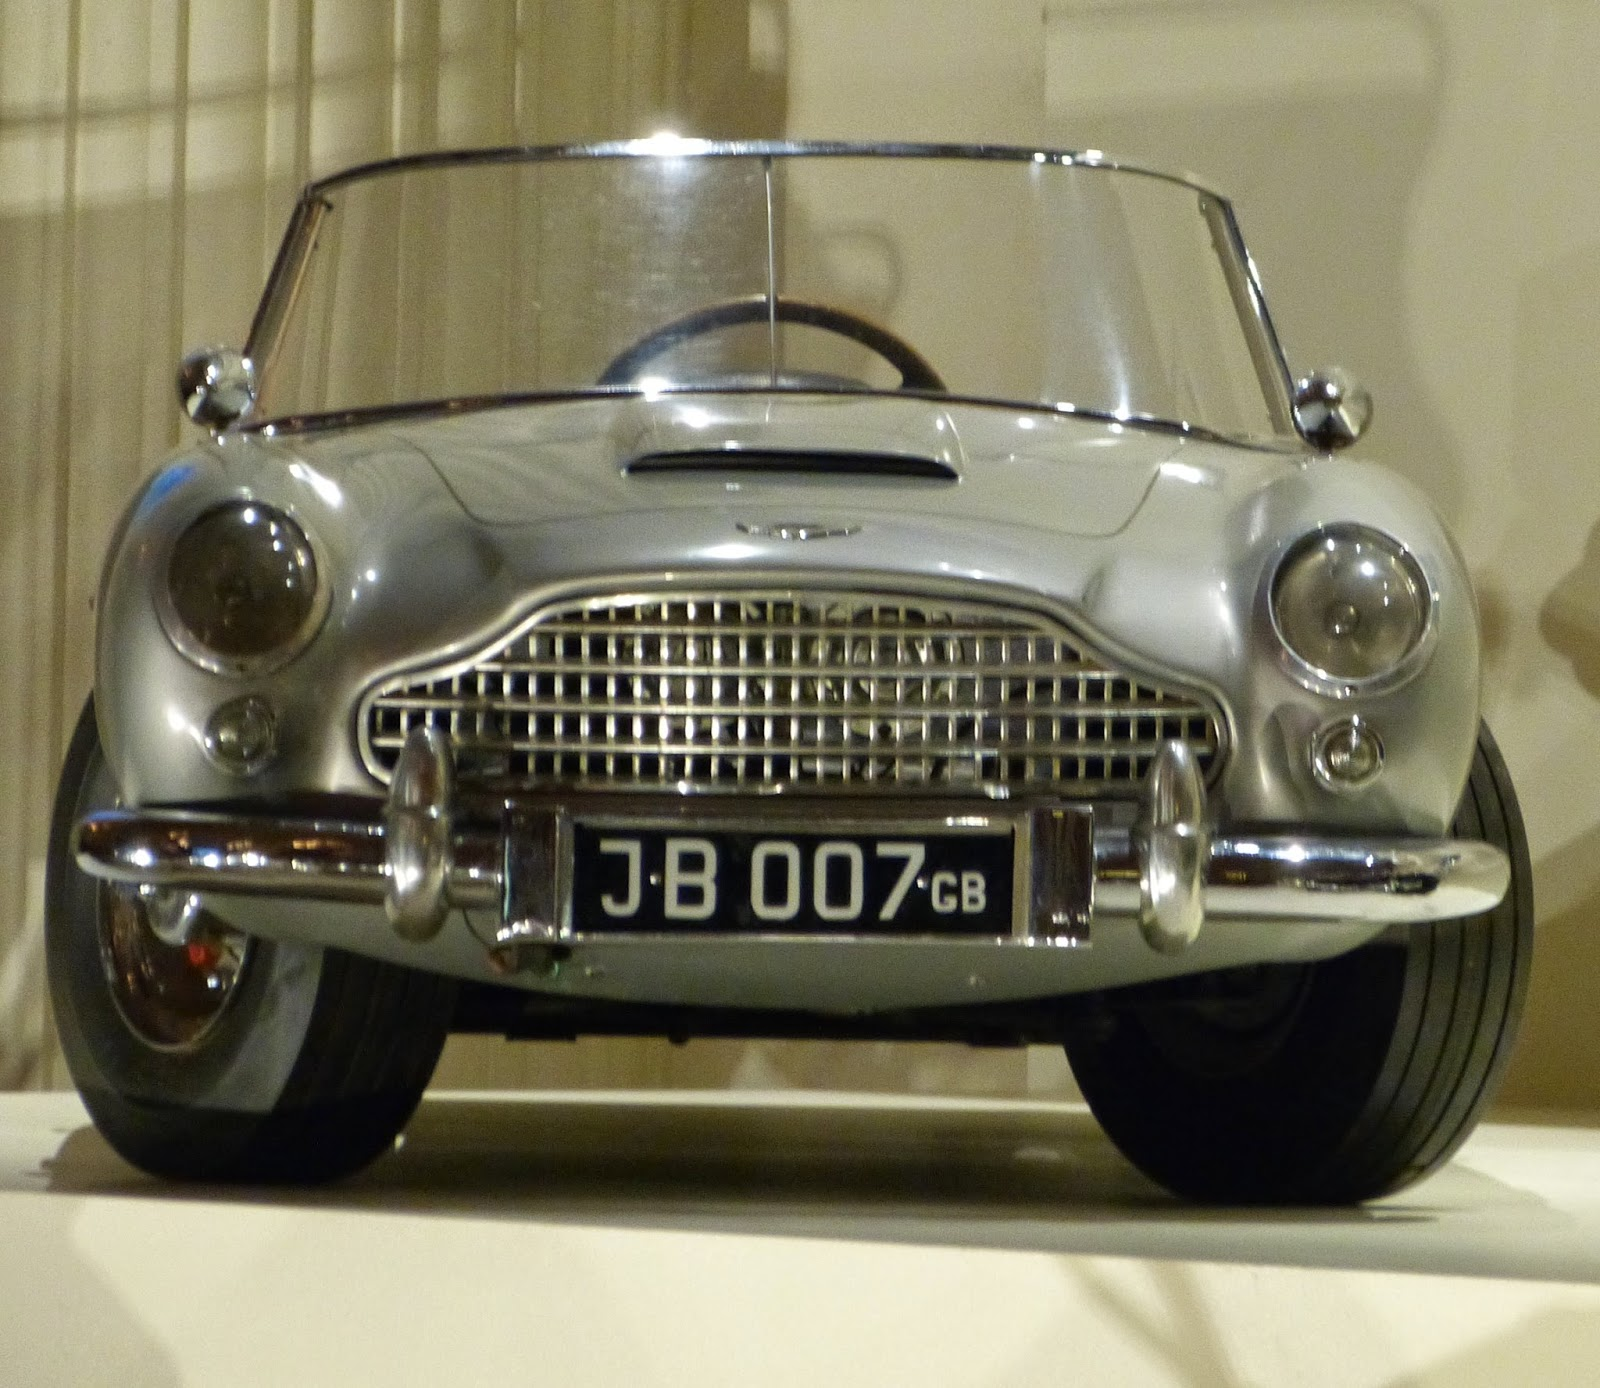 Miniature replica of James Bond's car (1966)